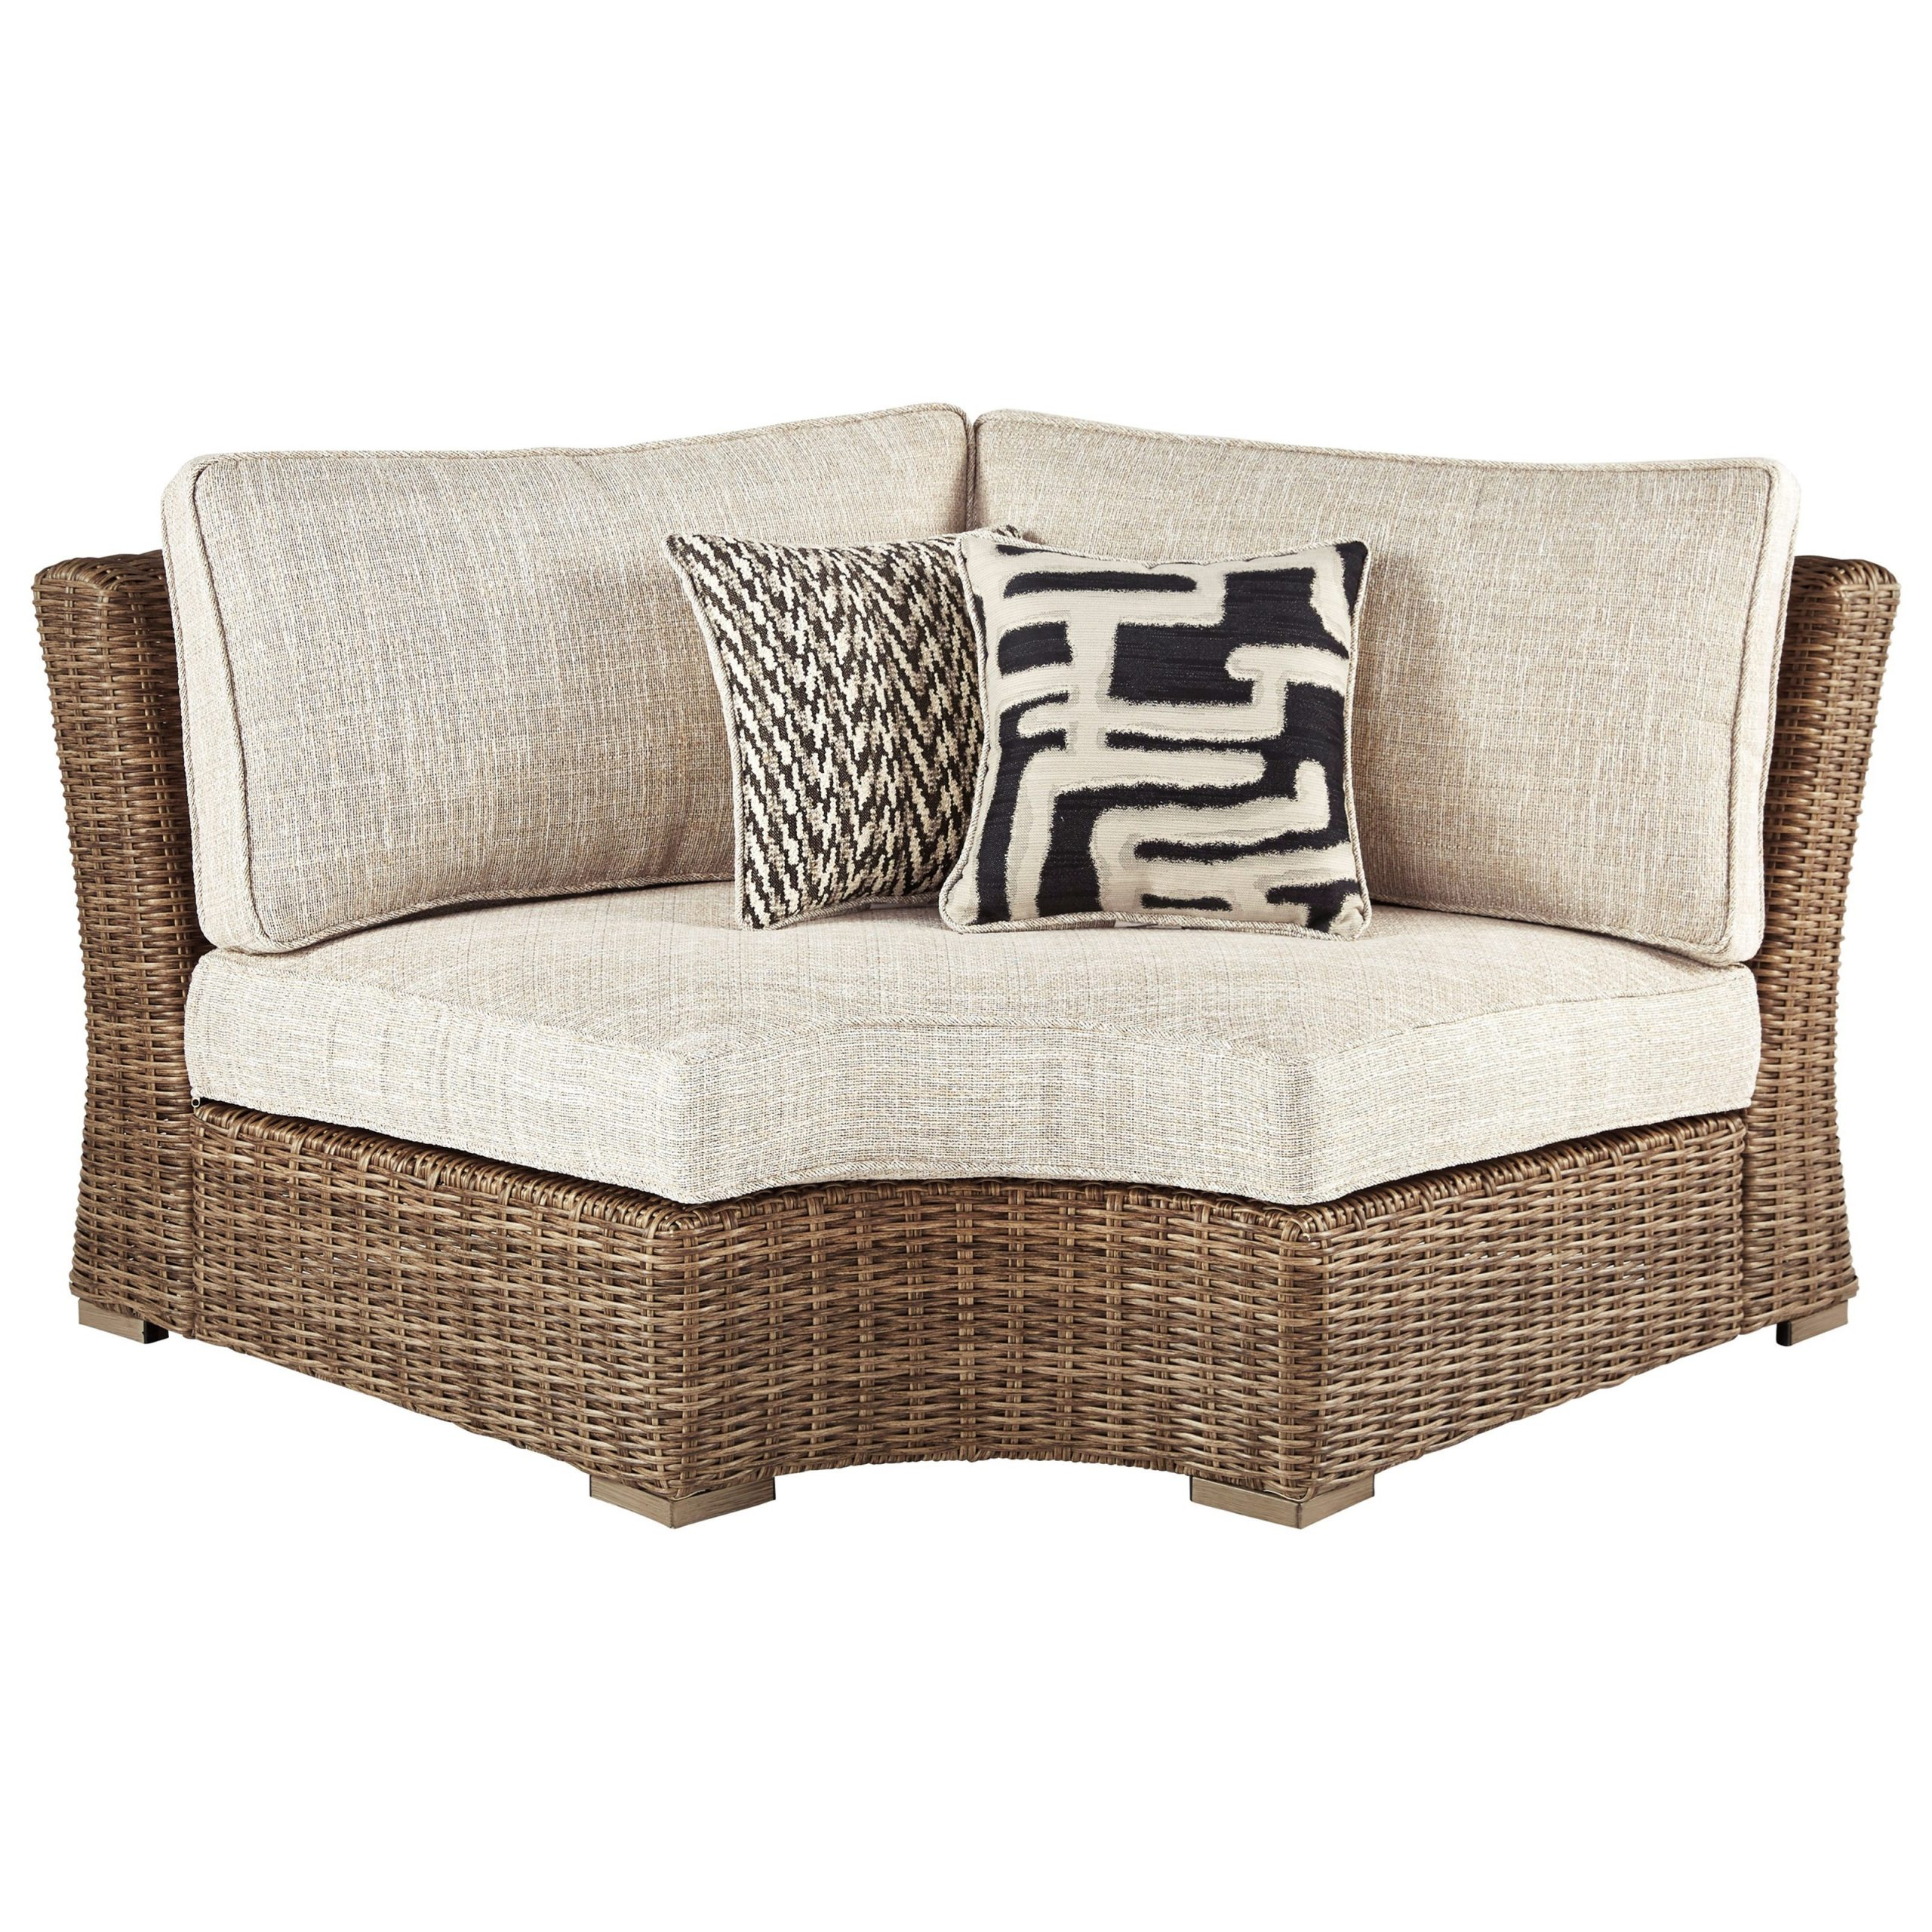 Beachcroft Curved Corner Chair With Cushion For Cushioned Glider Benches With Cushions (View 24 of 27)